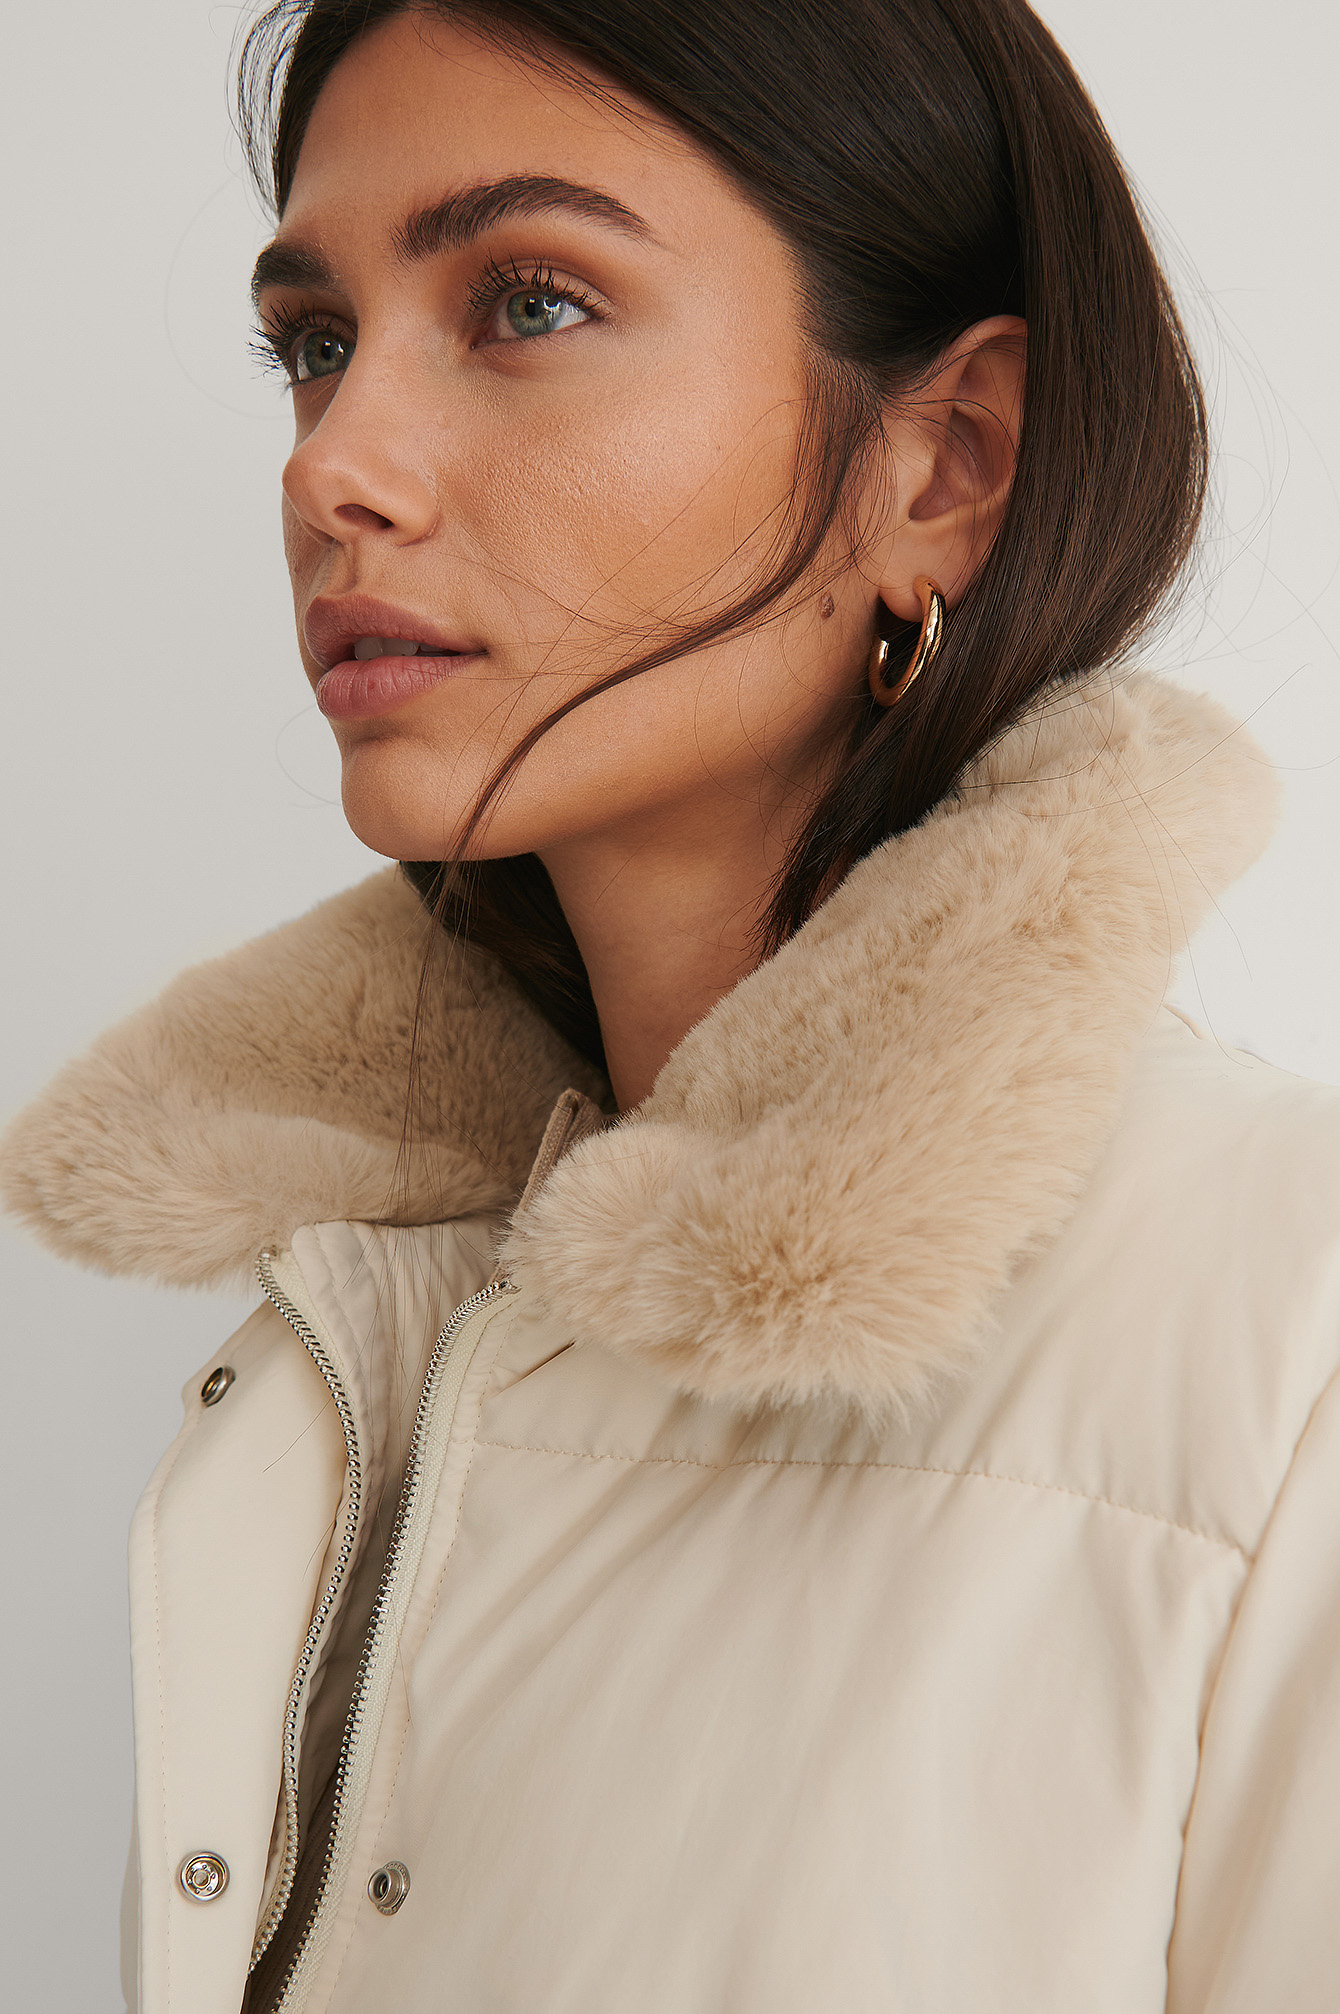 Cream Drawstring Faux Fur Jacket